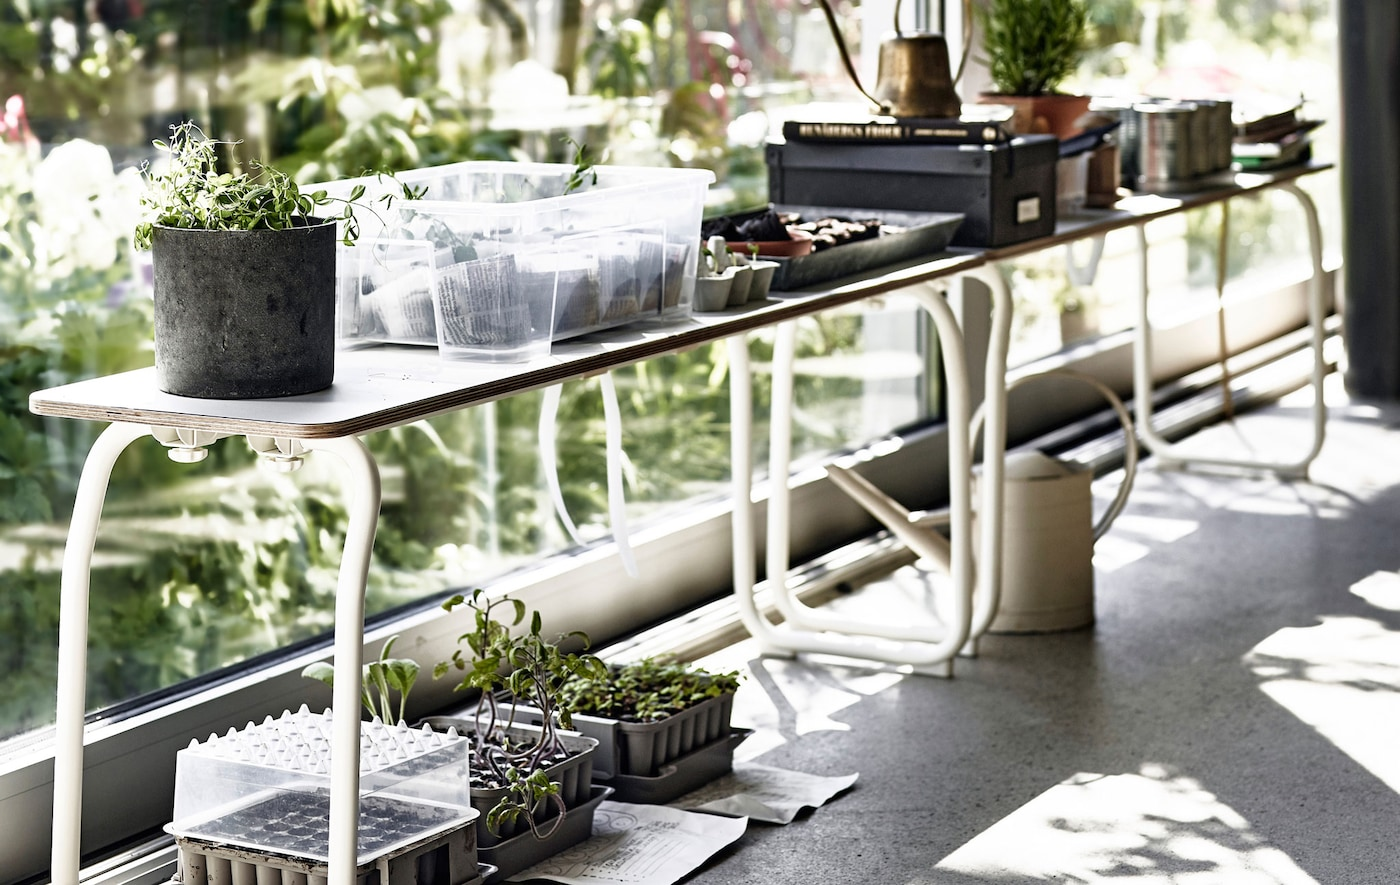 Bring the outdoors in by filling your home with plants